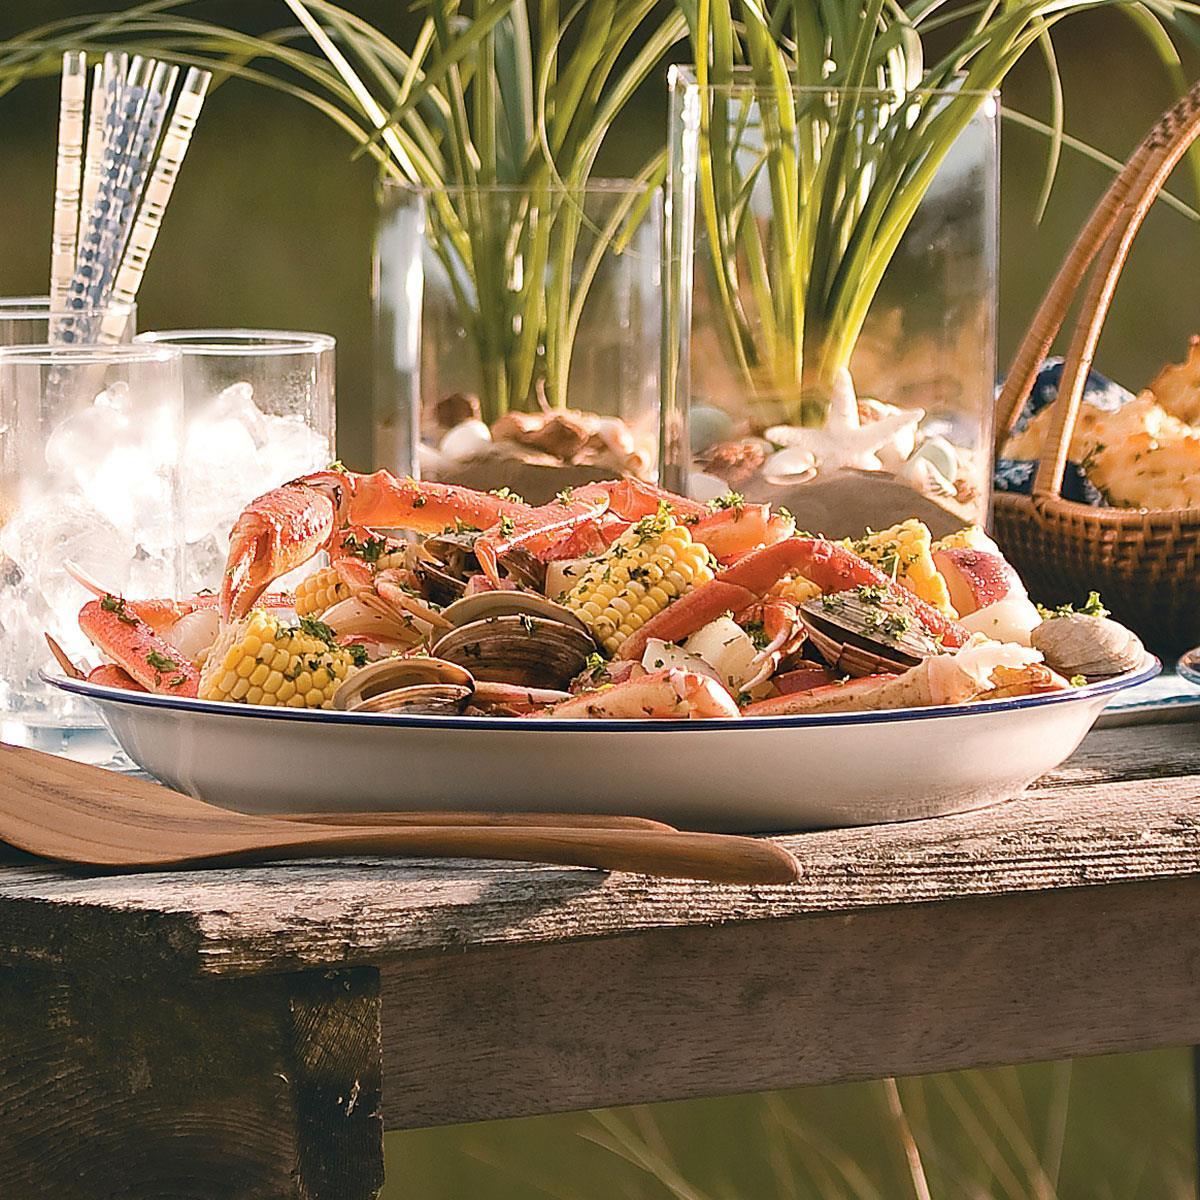 Grilled Clam Bake Recipe | Taste of Home